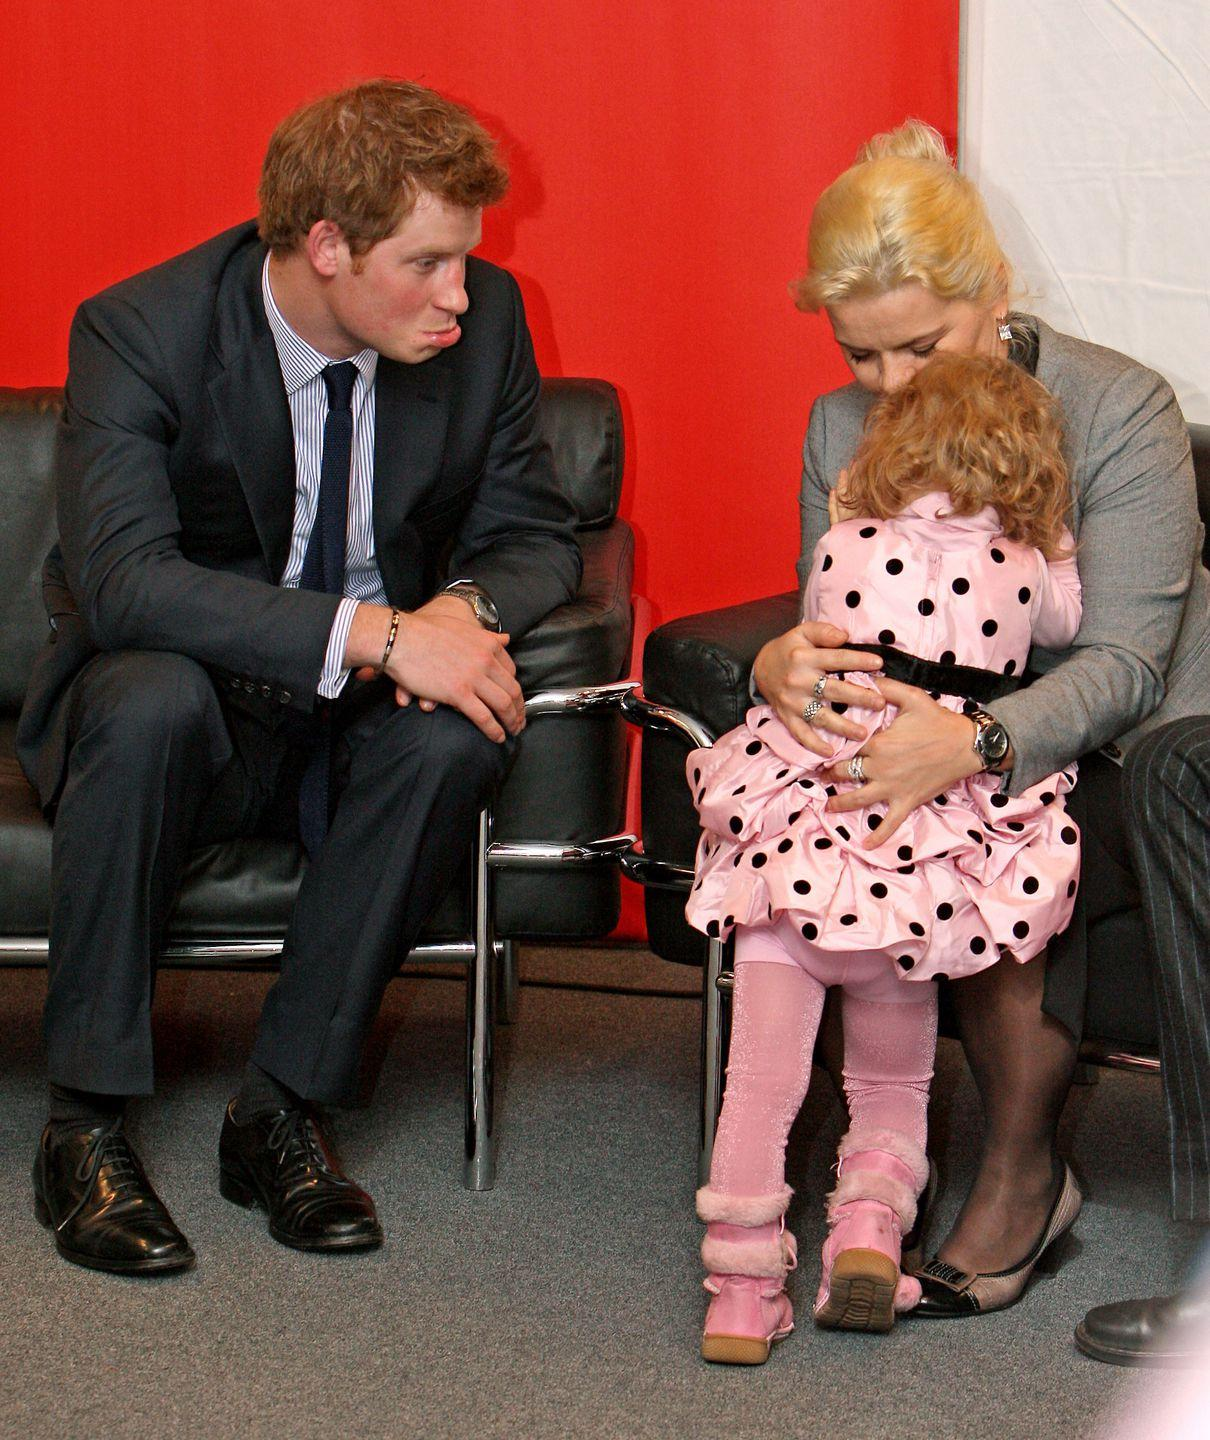 11 Photos Proving Prince Harry Is the World's Most Famous Ginger